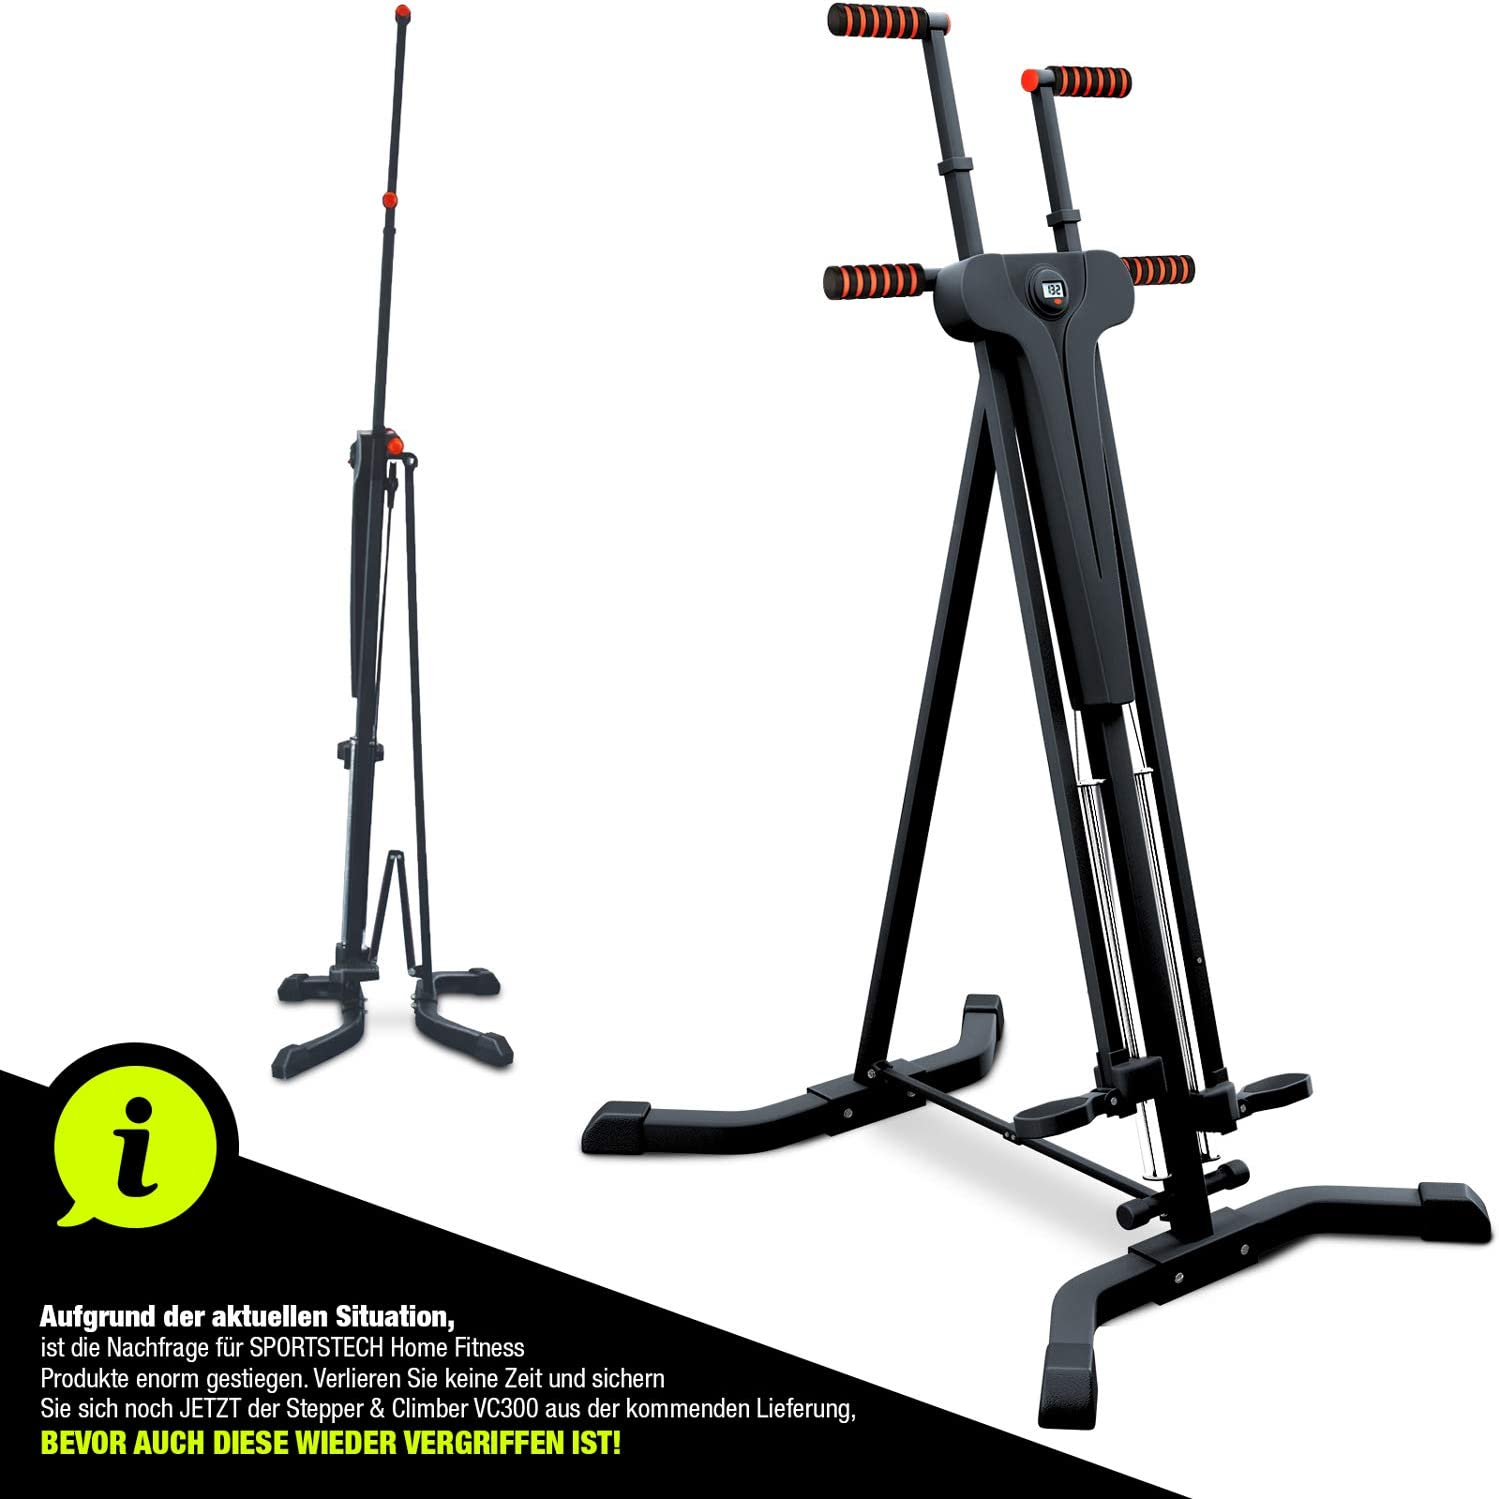 Sportstech innovativer 2in1 Stepper & Vertical Climber Fitness - Klettern - Kletterbewegungen -